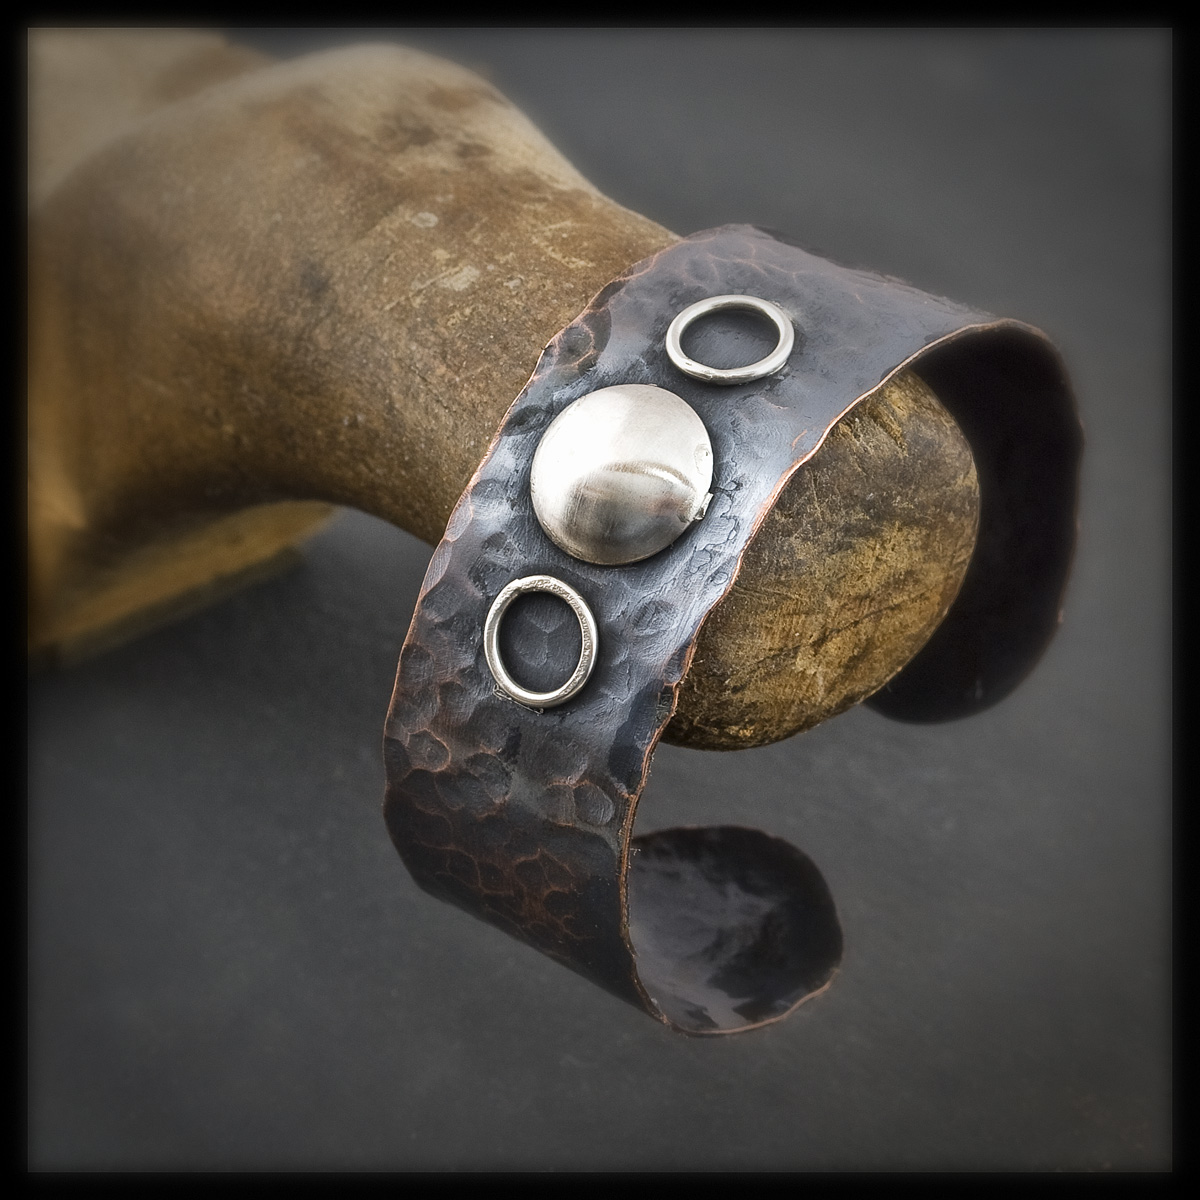 Hammered copper cuff with sterling silver embellishment